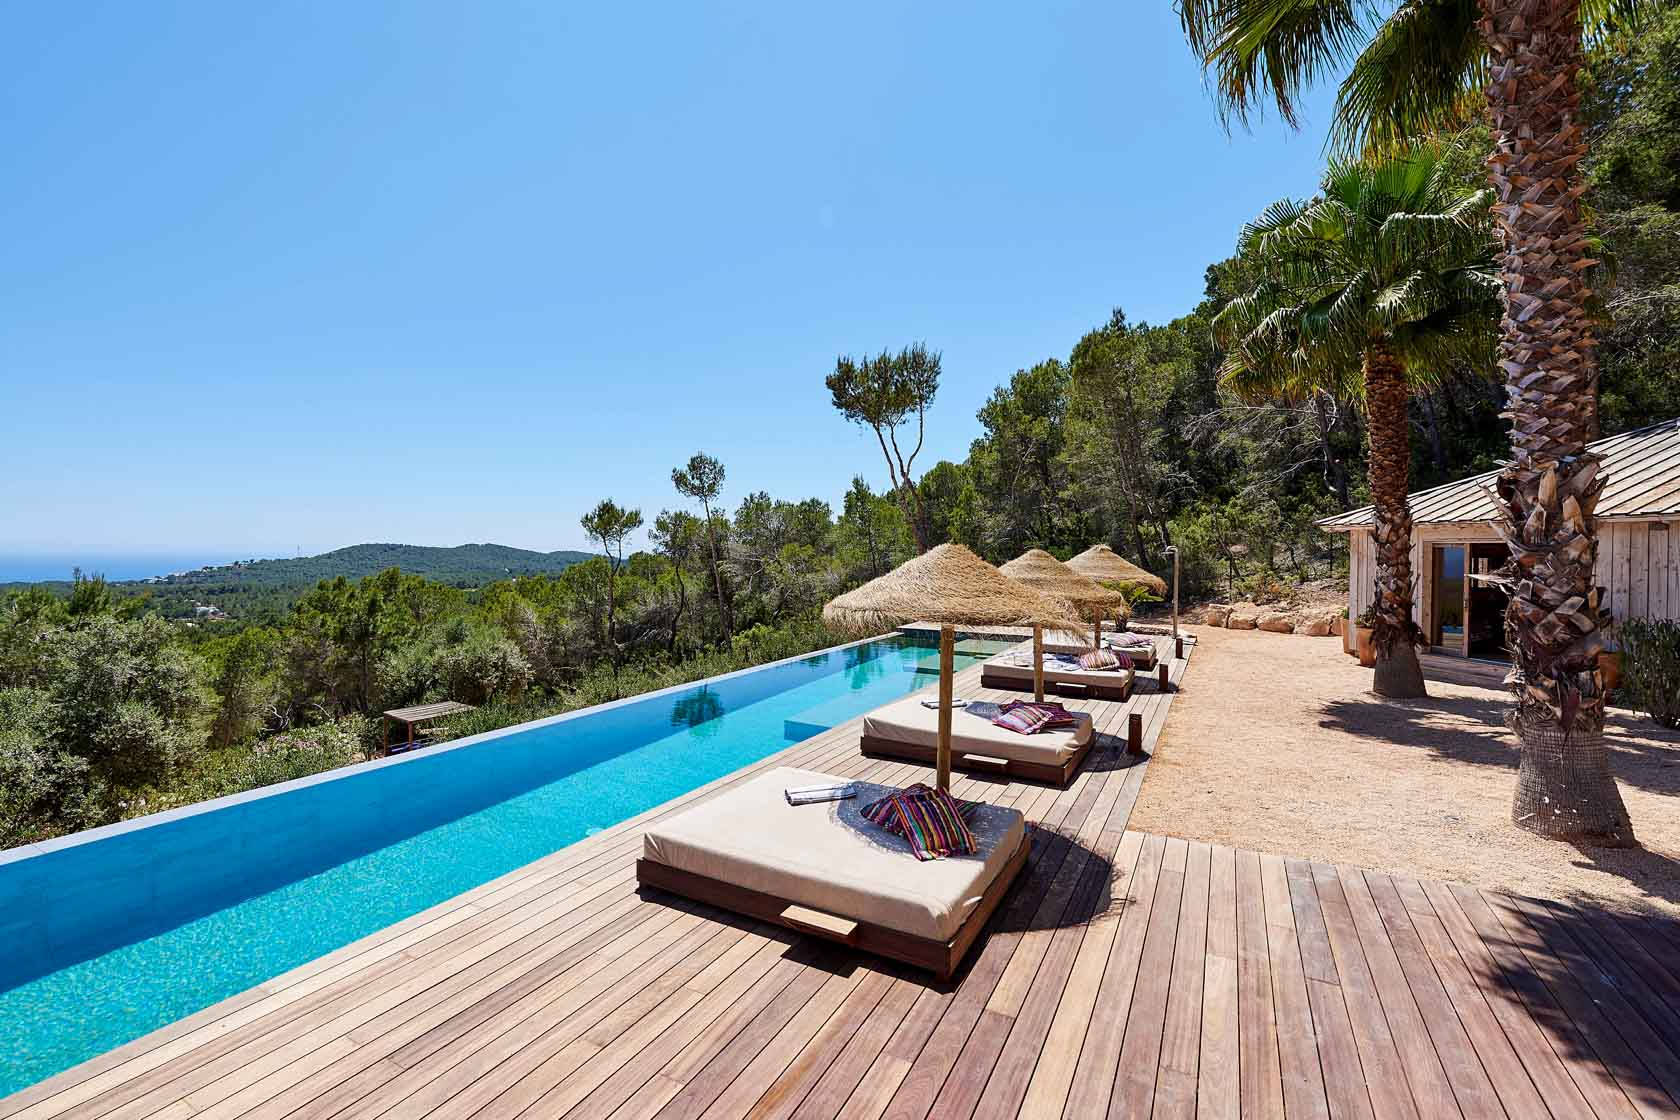 luxury villa rental, Spain, ESPIBI 2377